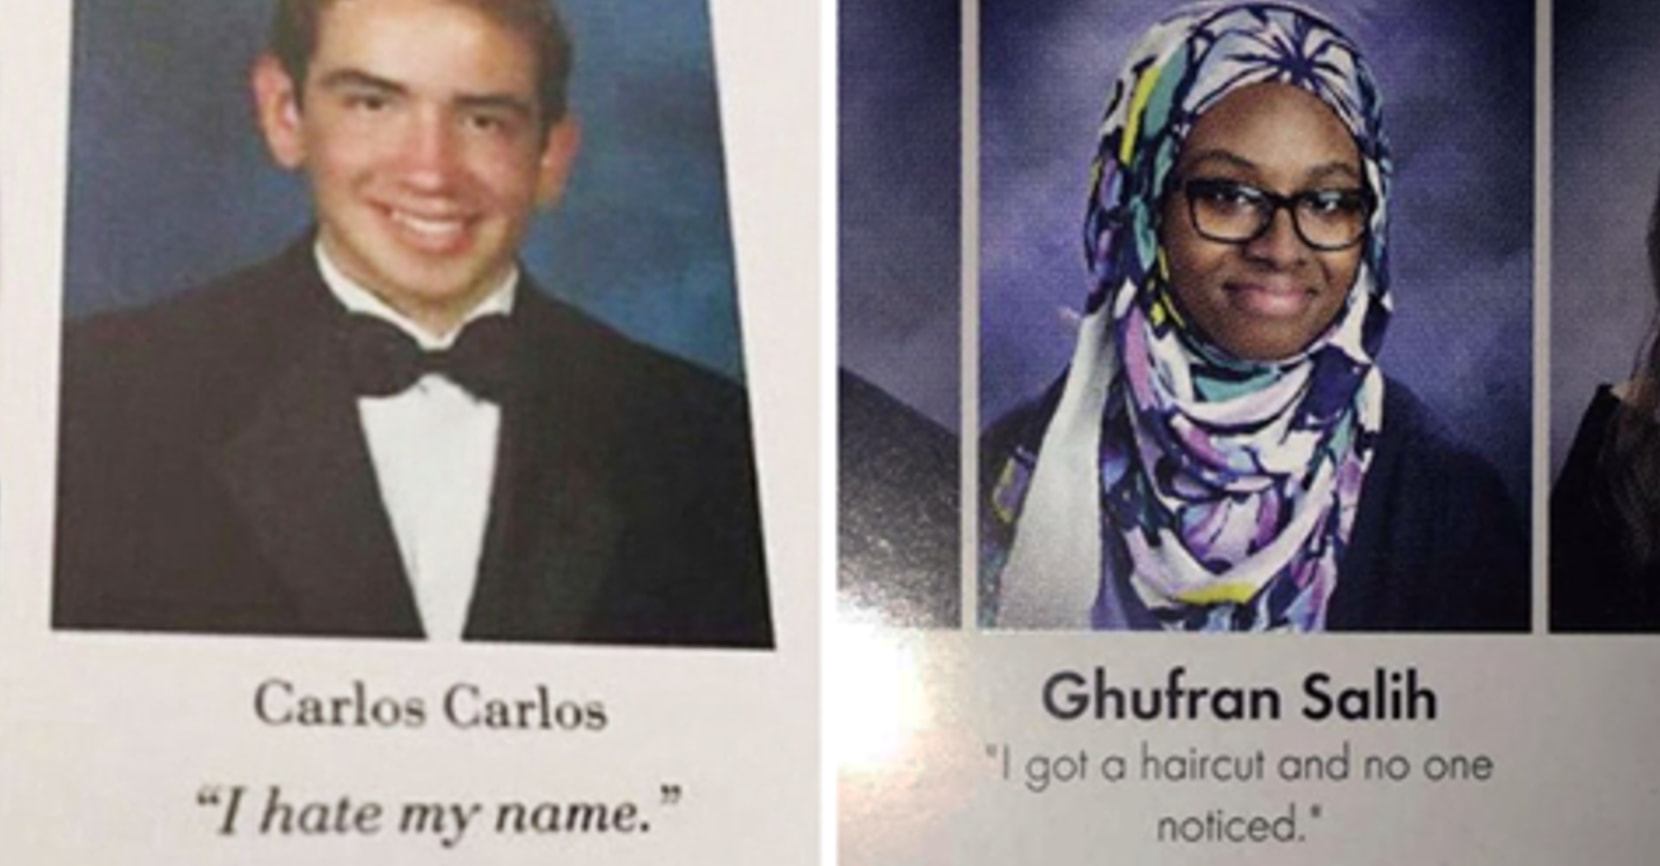 Funny Yearbook Names: 13 Hilarious Yearbook Quotes That Will Go Down In History